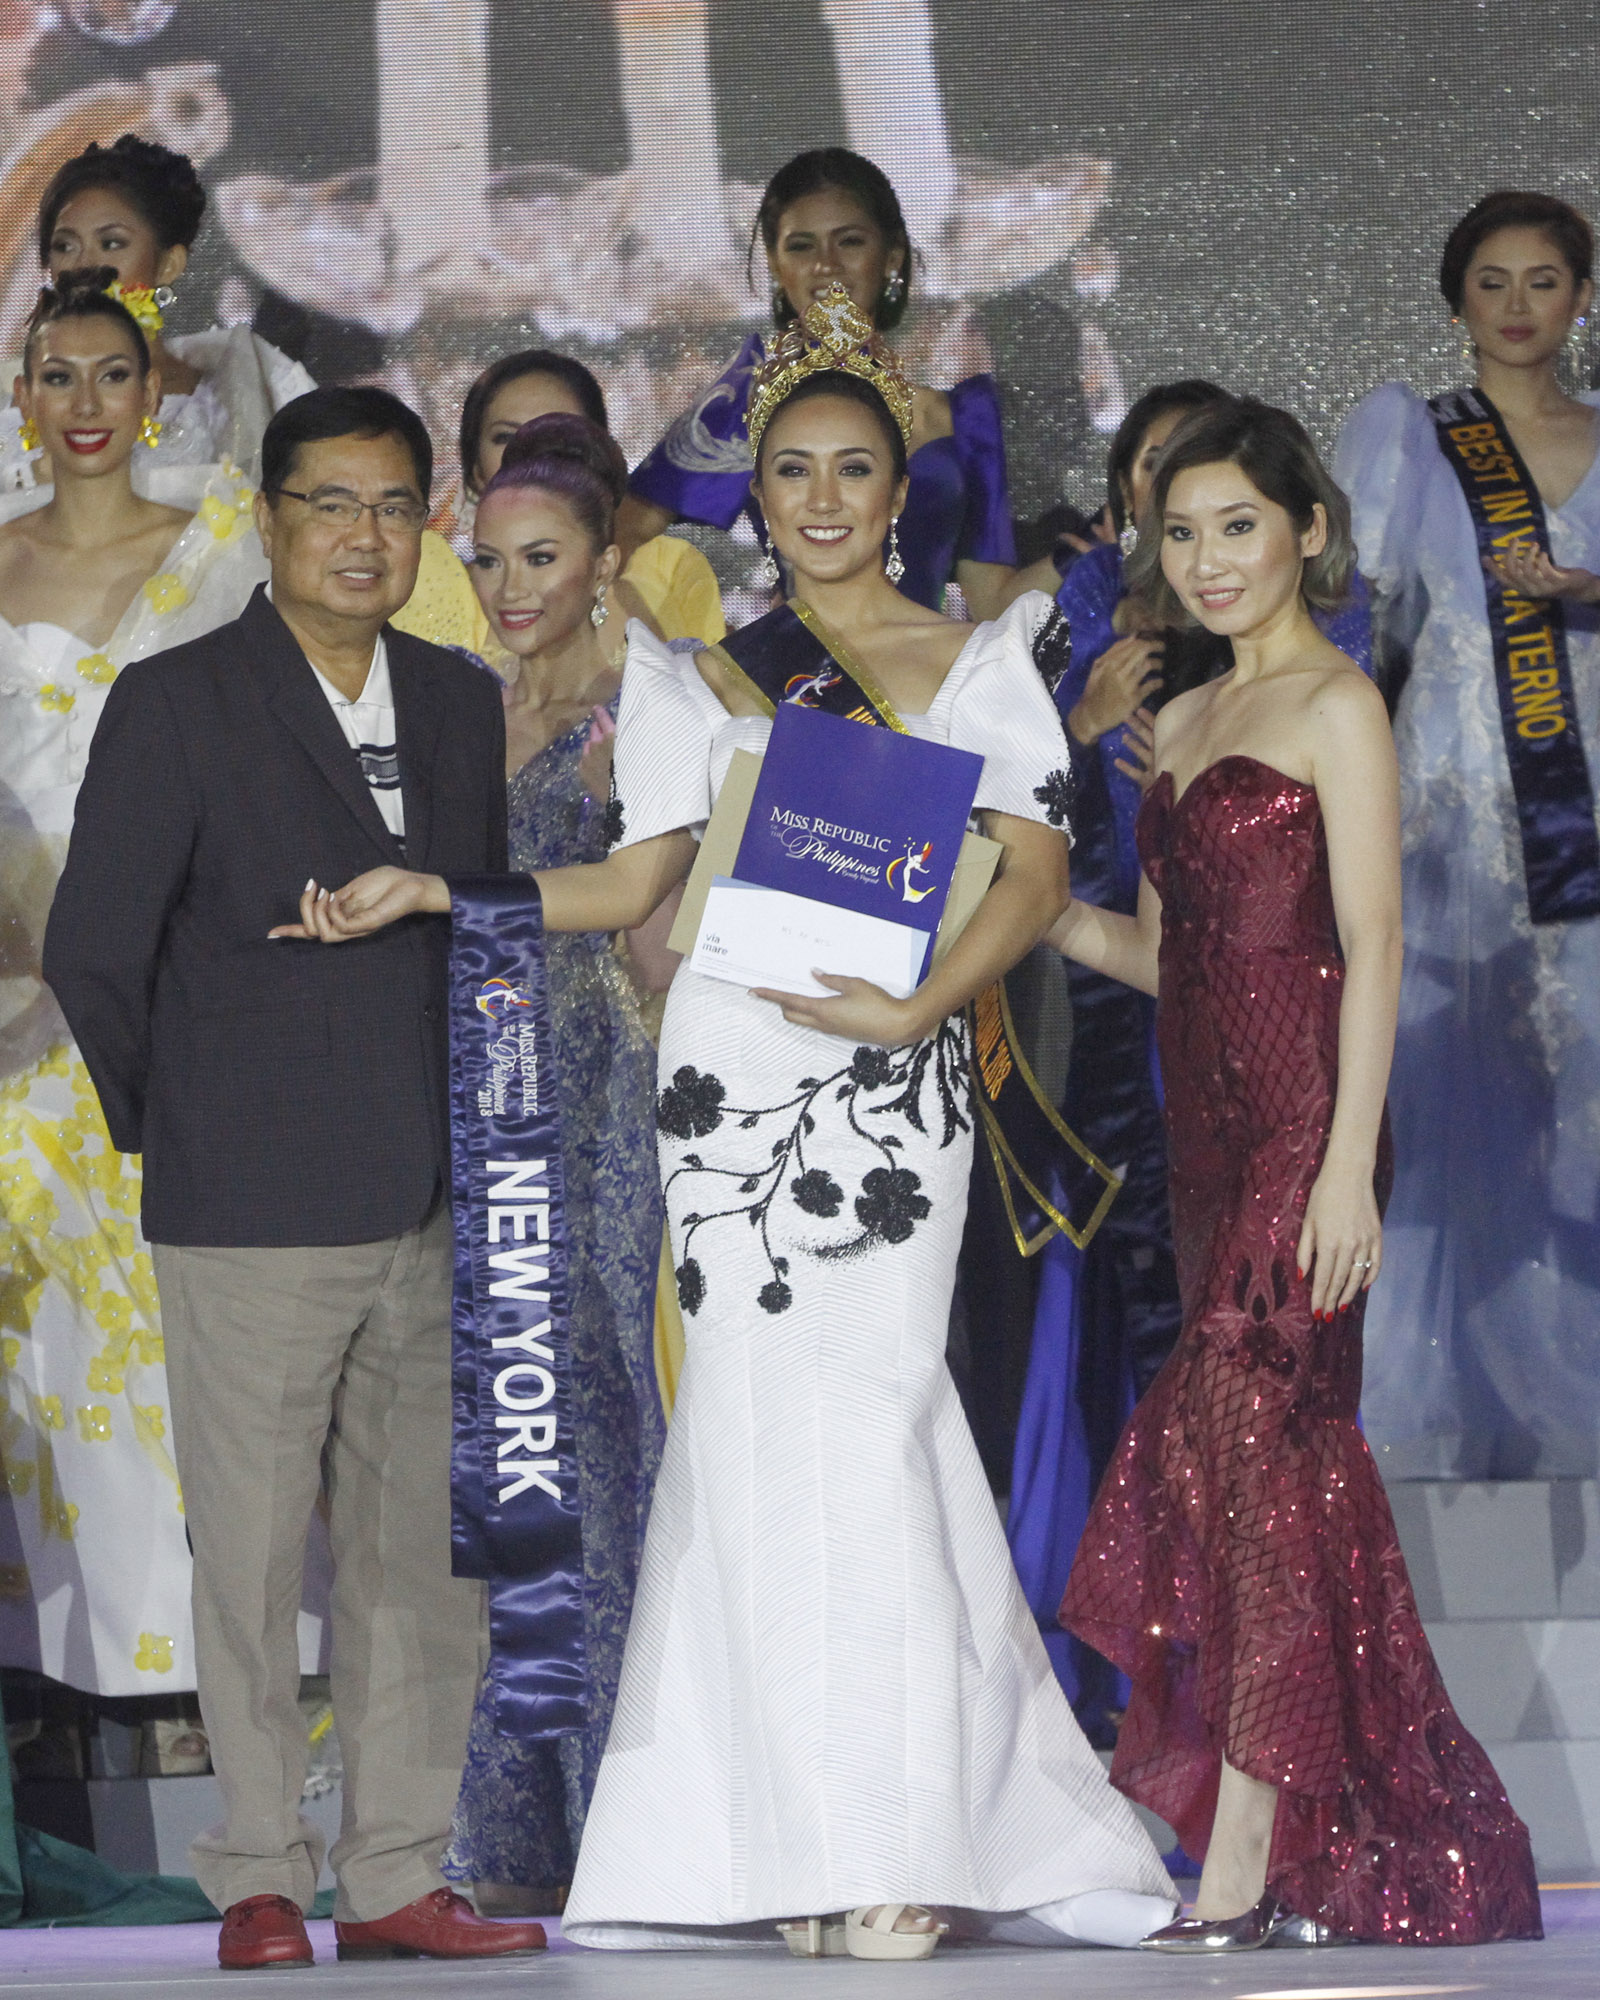 TALENT AND ADVOCACY. Miss Philippines America Excelsa De Jesus, representing New York City, bags the Ms. Republic of the Philippines-International 2018 title during the coronation night at the Sofitel Hotel in Pasay City early Thursday morning (Jan. 31, 2018). For the past two years, De Jesus has been conducting fundraising activities to help empower the sick and needy Filipino youths. The pageant, which was revived in 2015, aims to promote local tourism. (PNA photo by Avito Dalan)